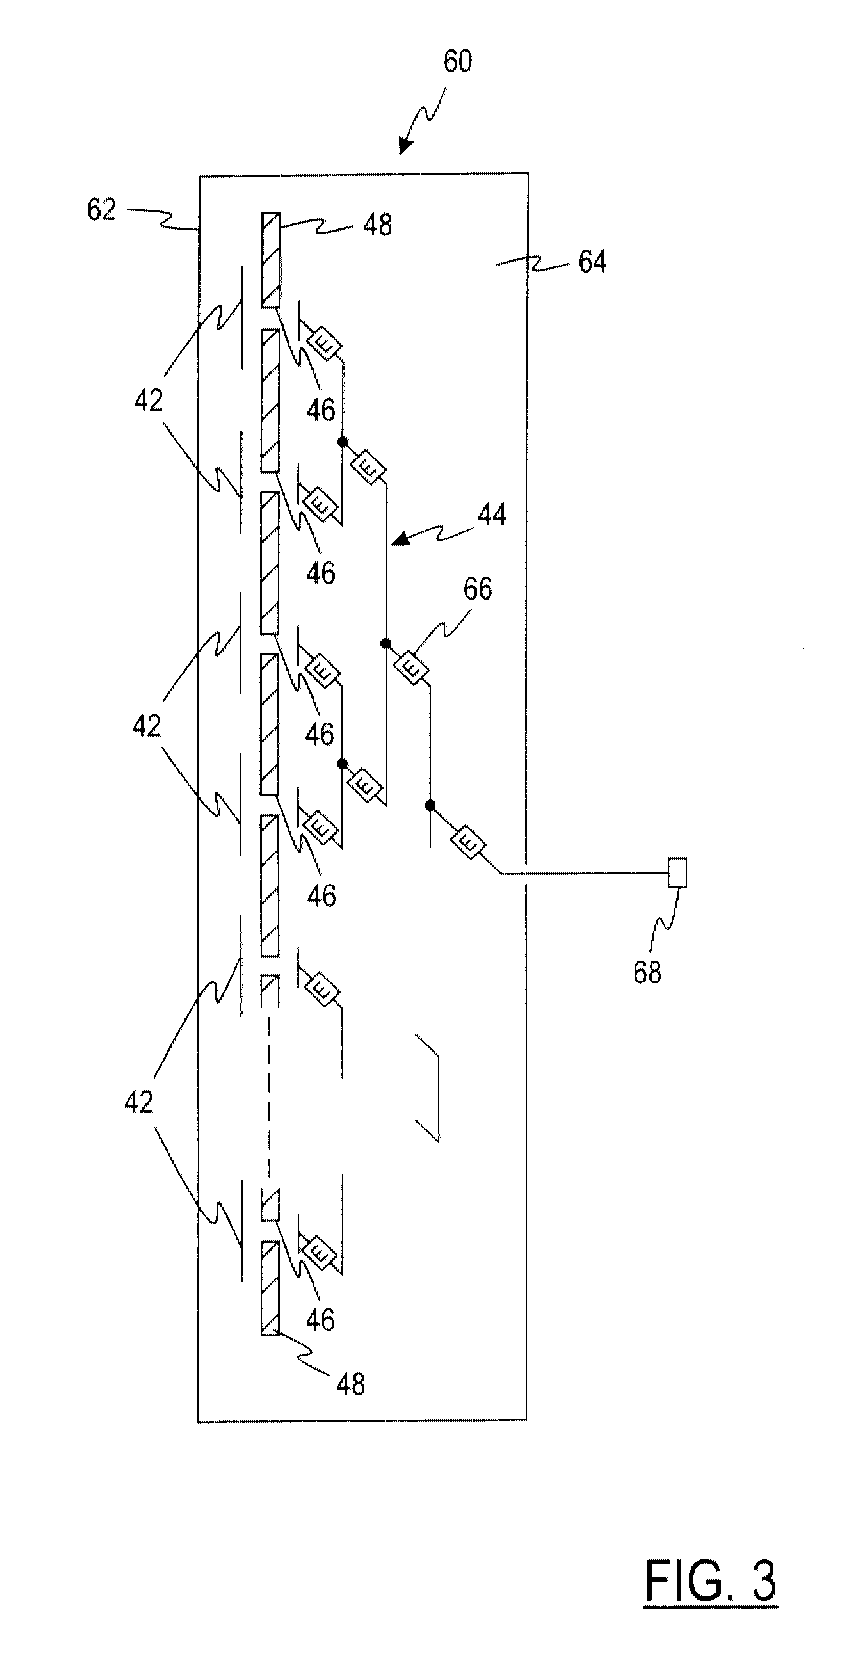 Ep1117147a2 Lightning Protection For An Active Antenna Using Patch Detector Circuit Diagram Figure 00000001